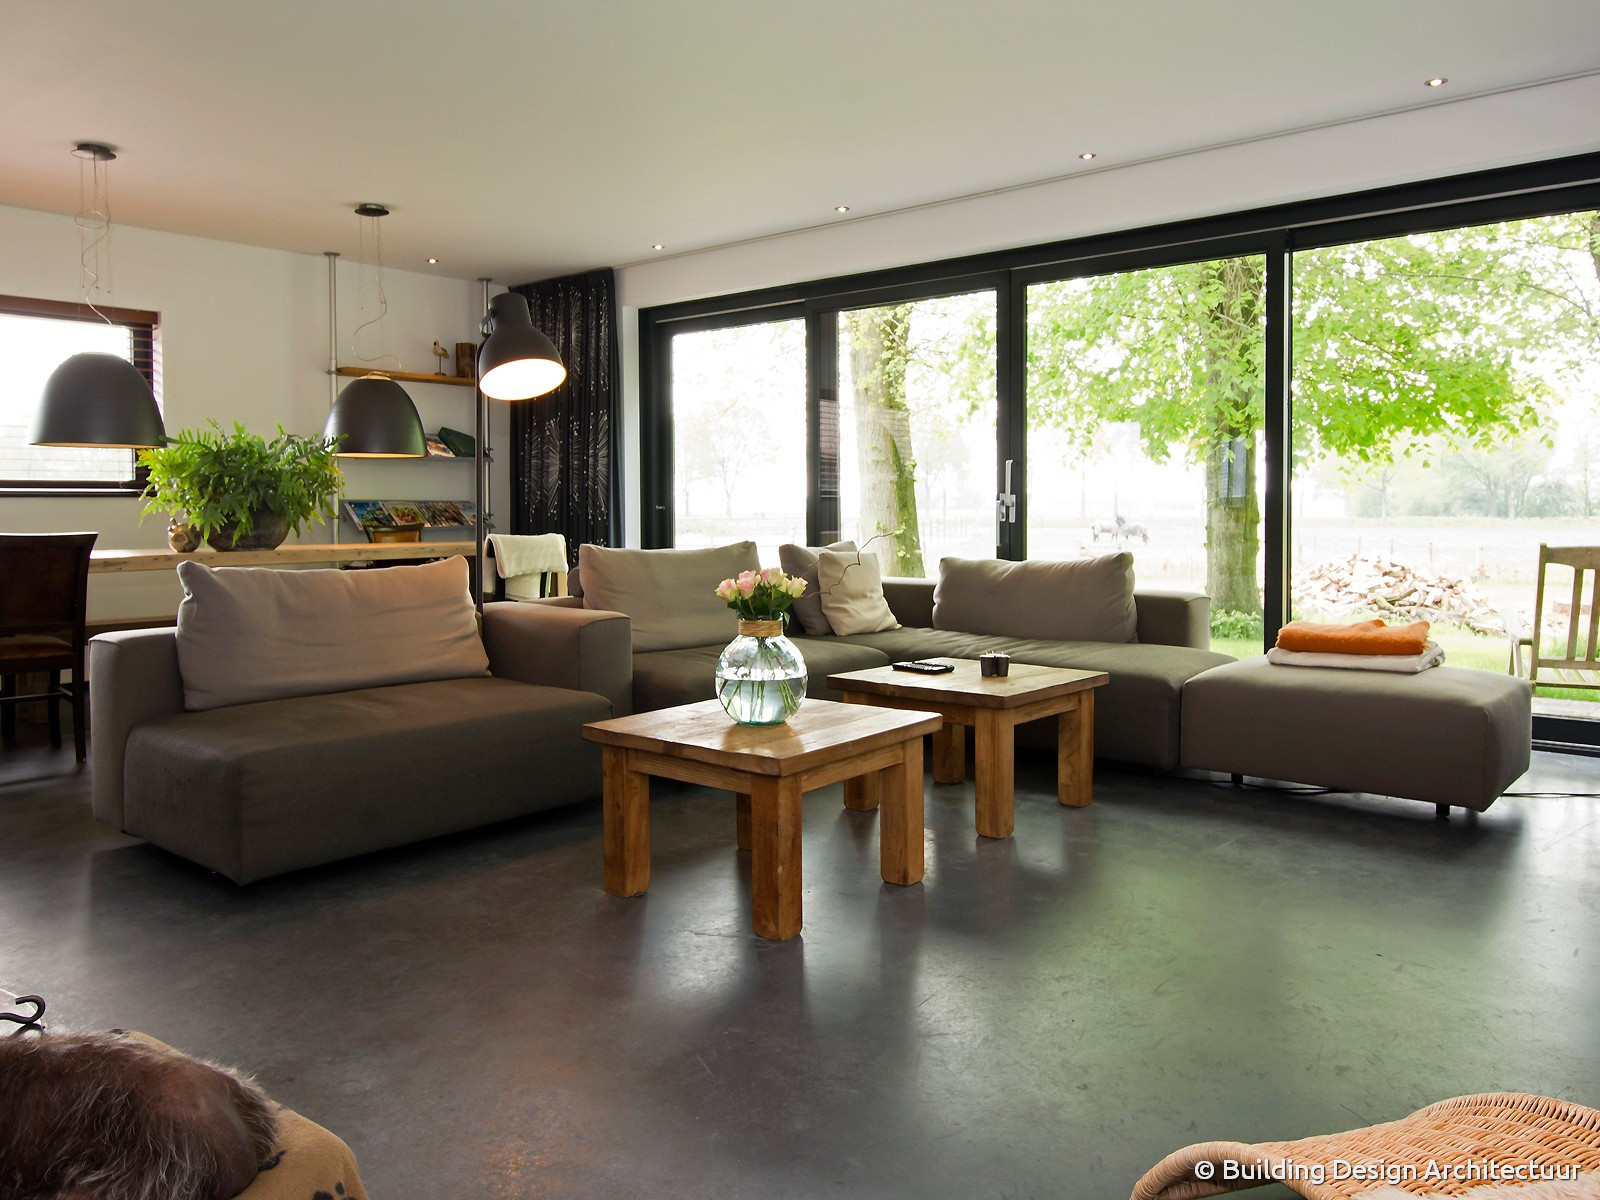 Interieur Schuurwoning Building Design Architectuur